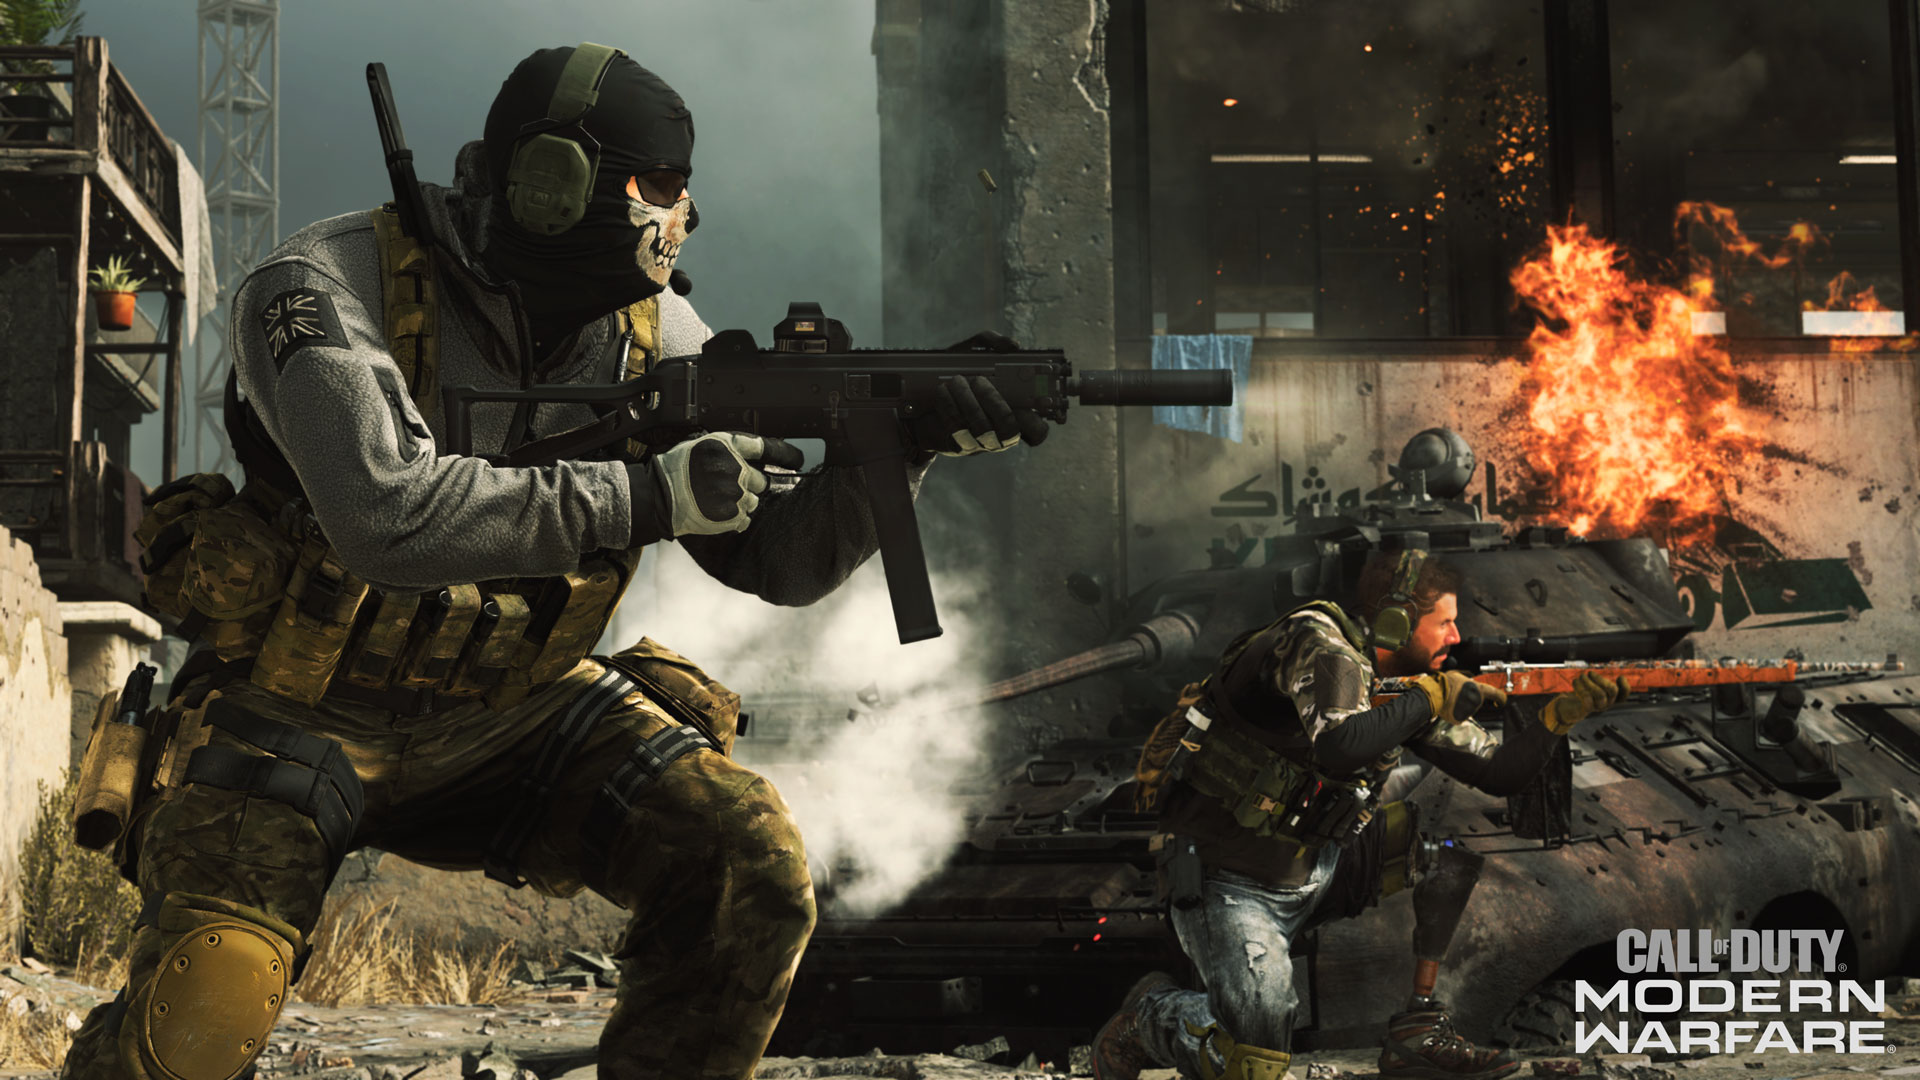 Activision Says Players Have Played 2 4 Billion Hours Of Call Of